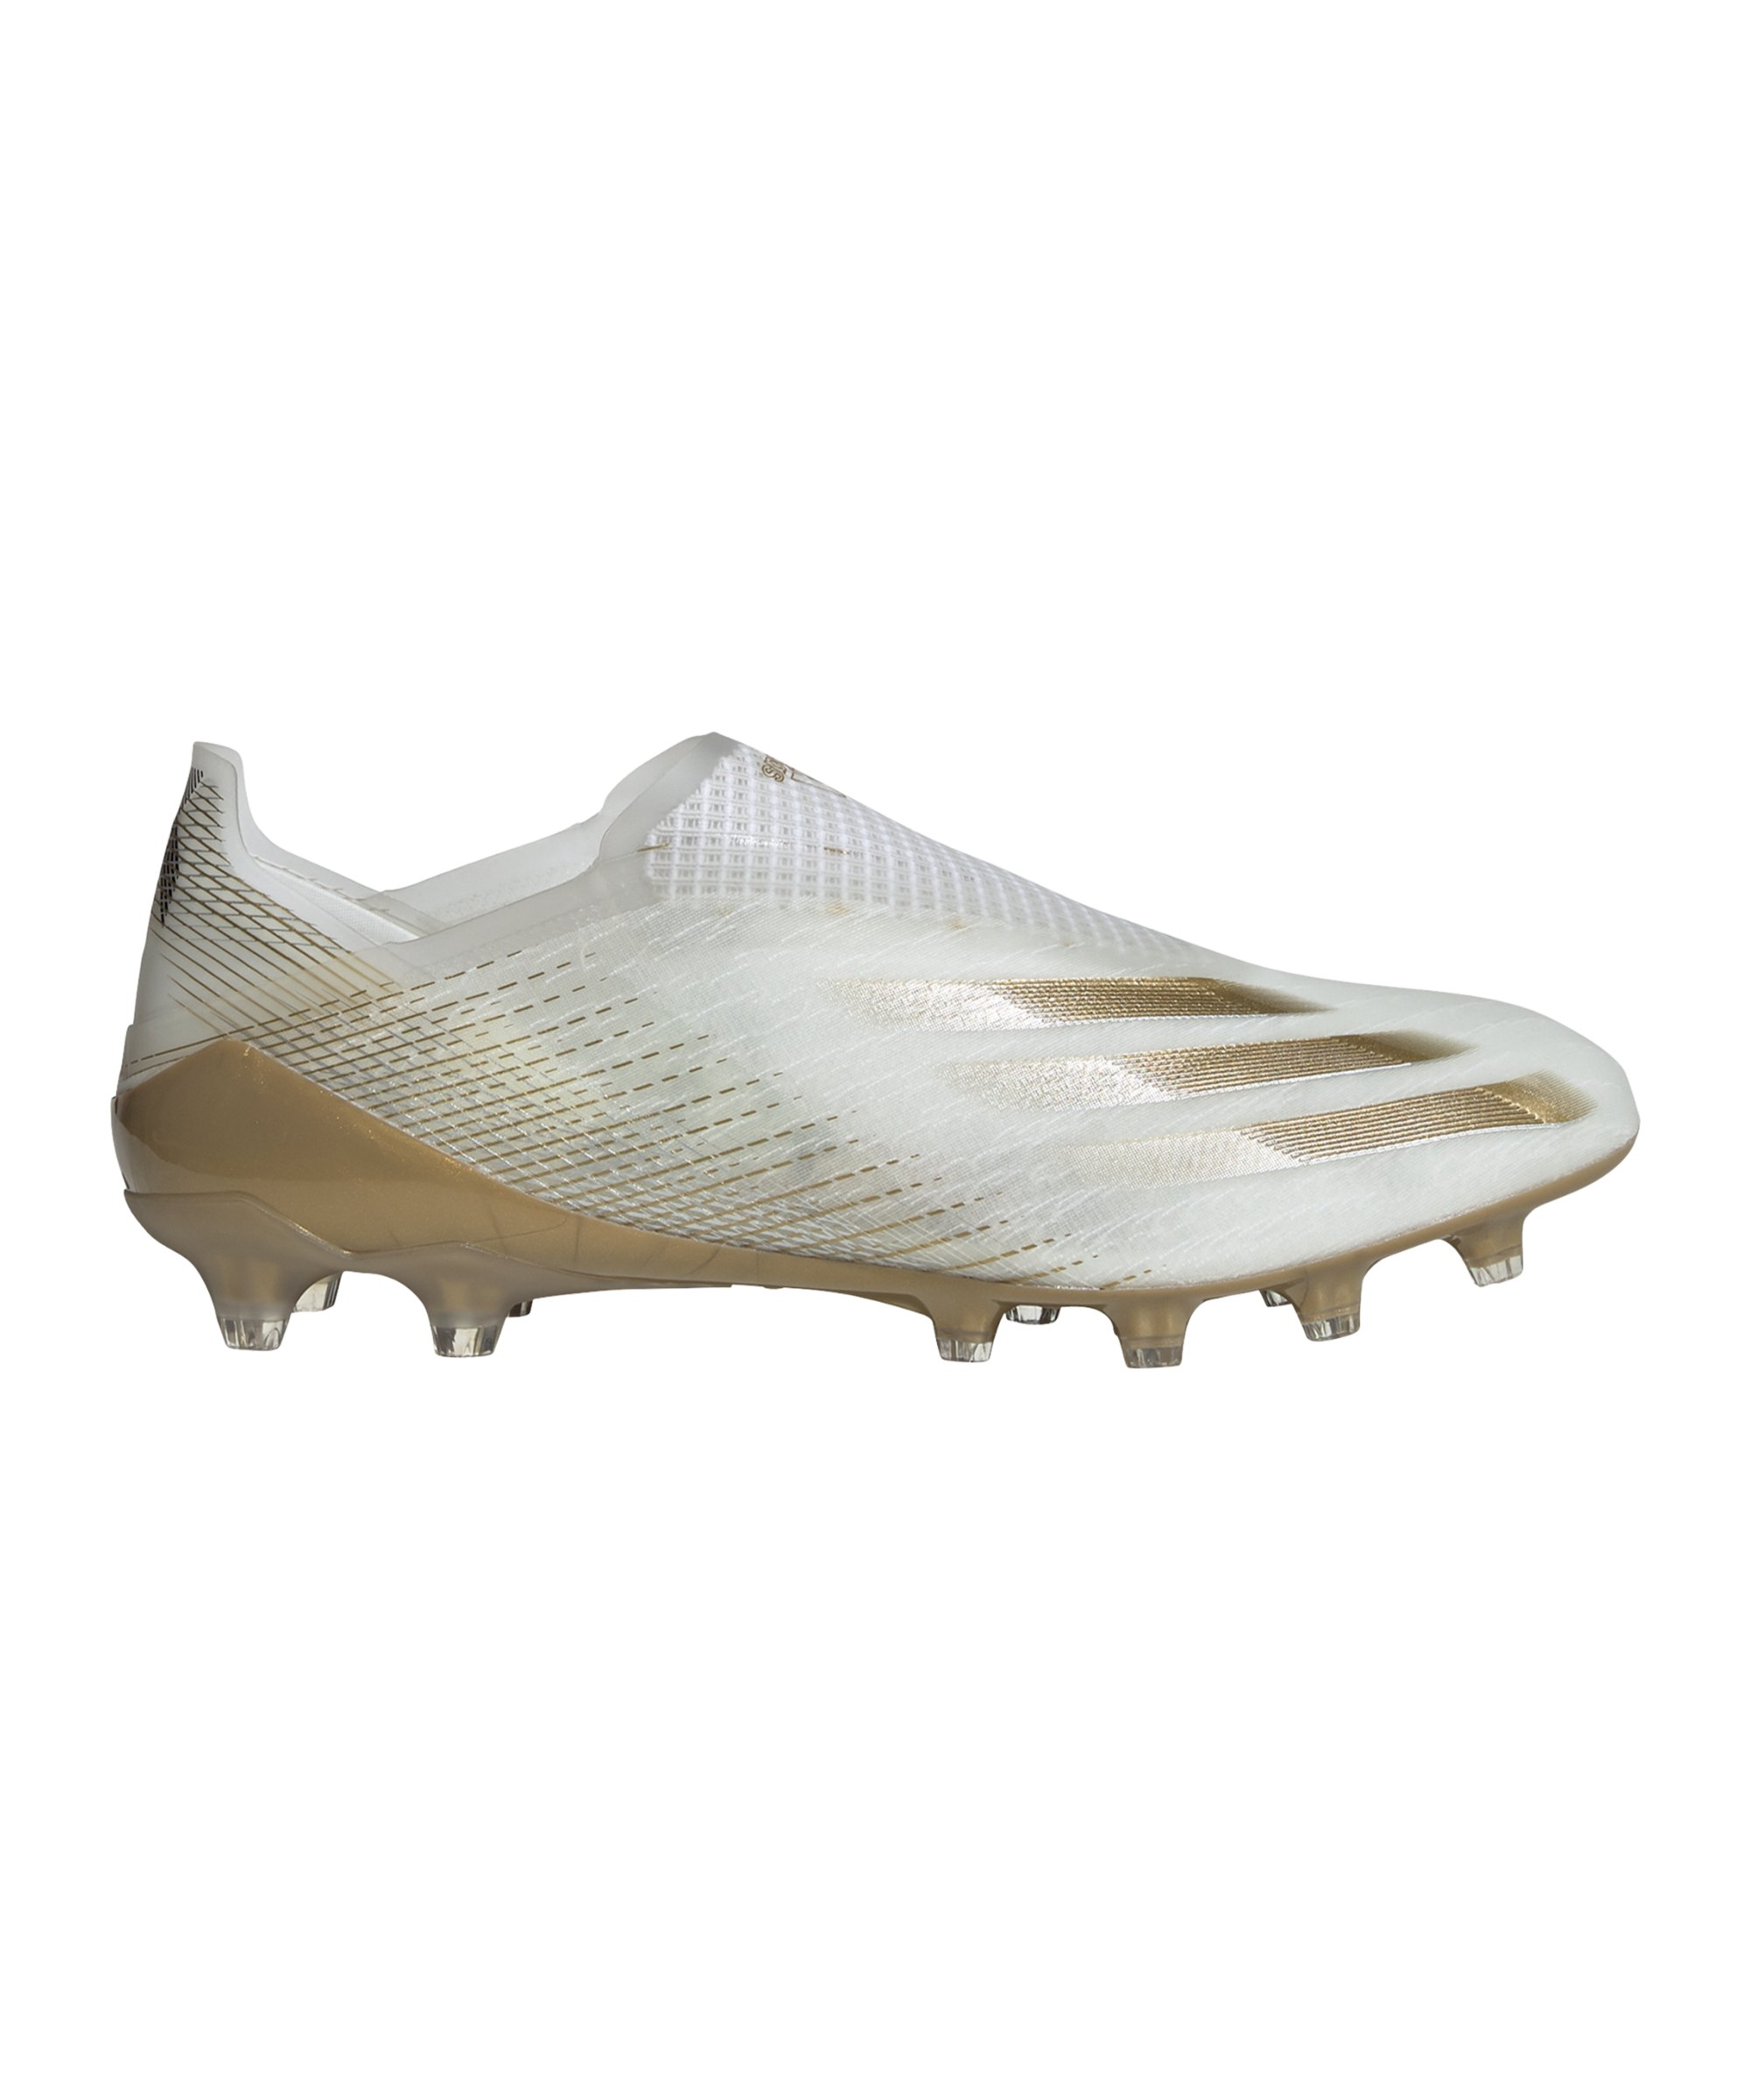 adidas X GHOSTED+ AG Inflight Weiss Gold - weiss